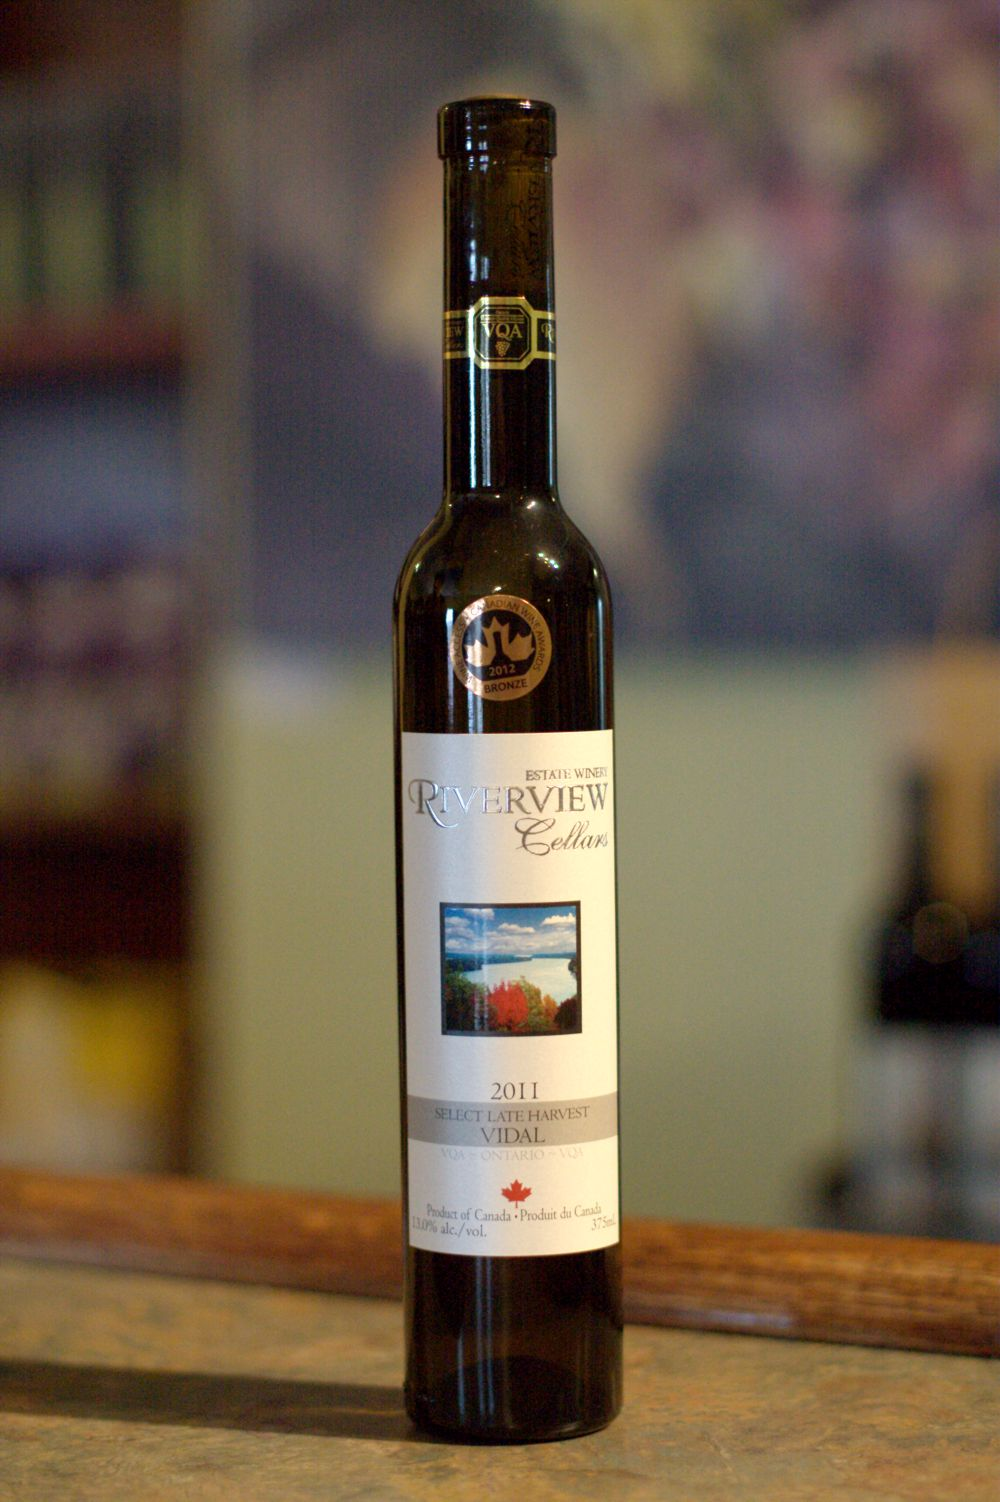 Riverview Cellar 2011 Dessert Wine